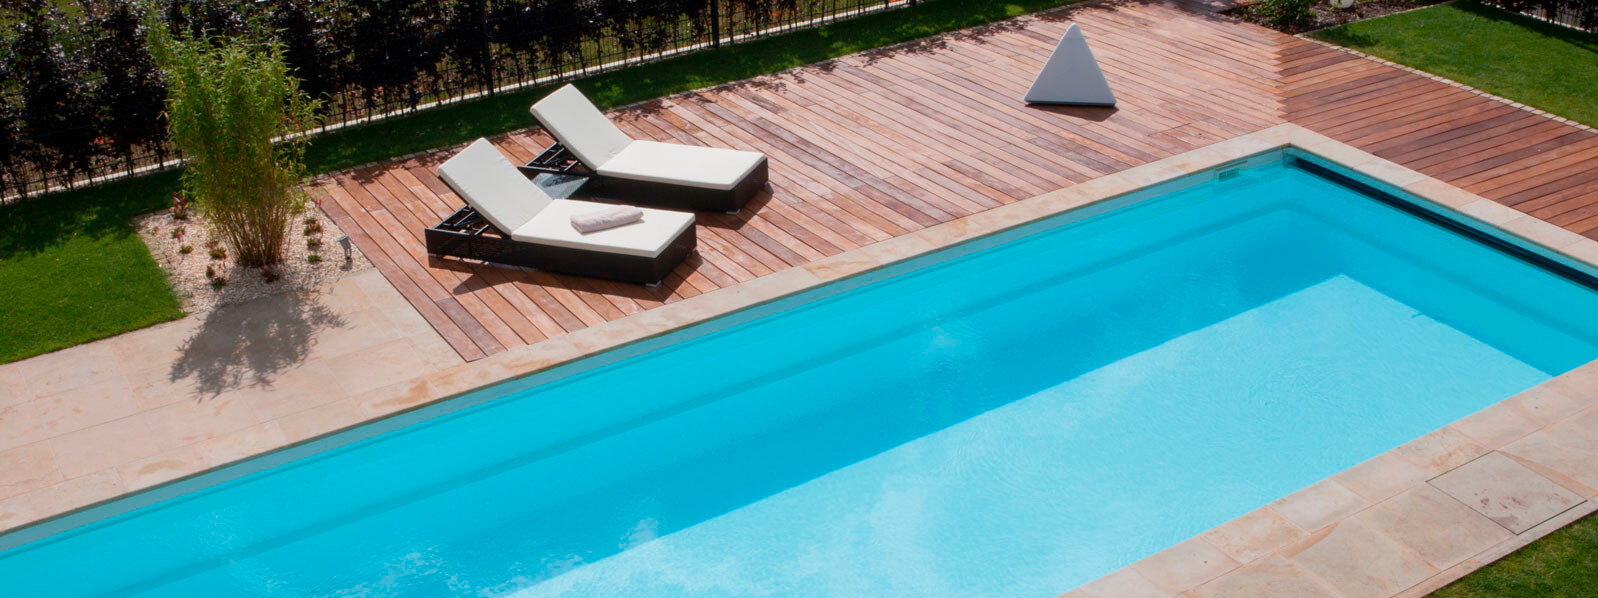 Pool holz perfect good moderne mit pool moderne aus holz for Pool design polen